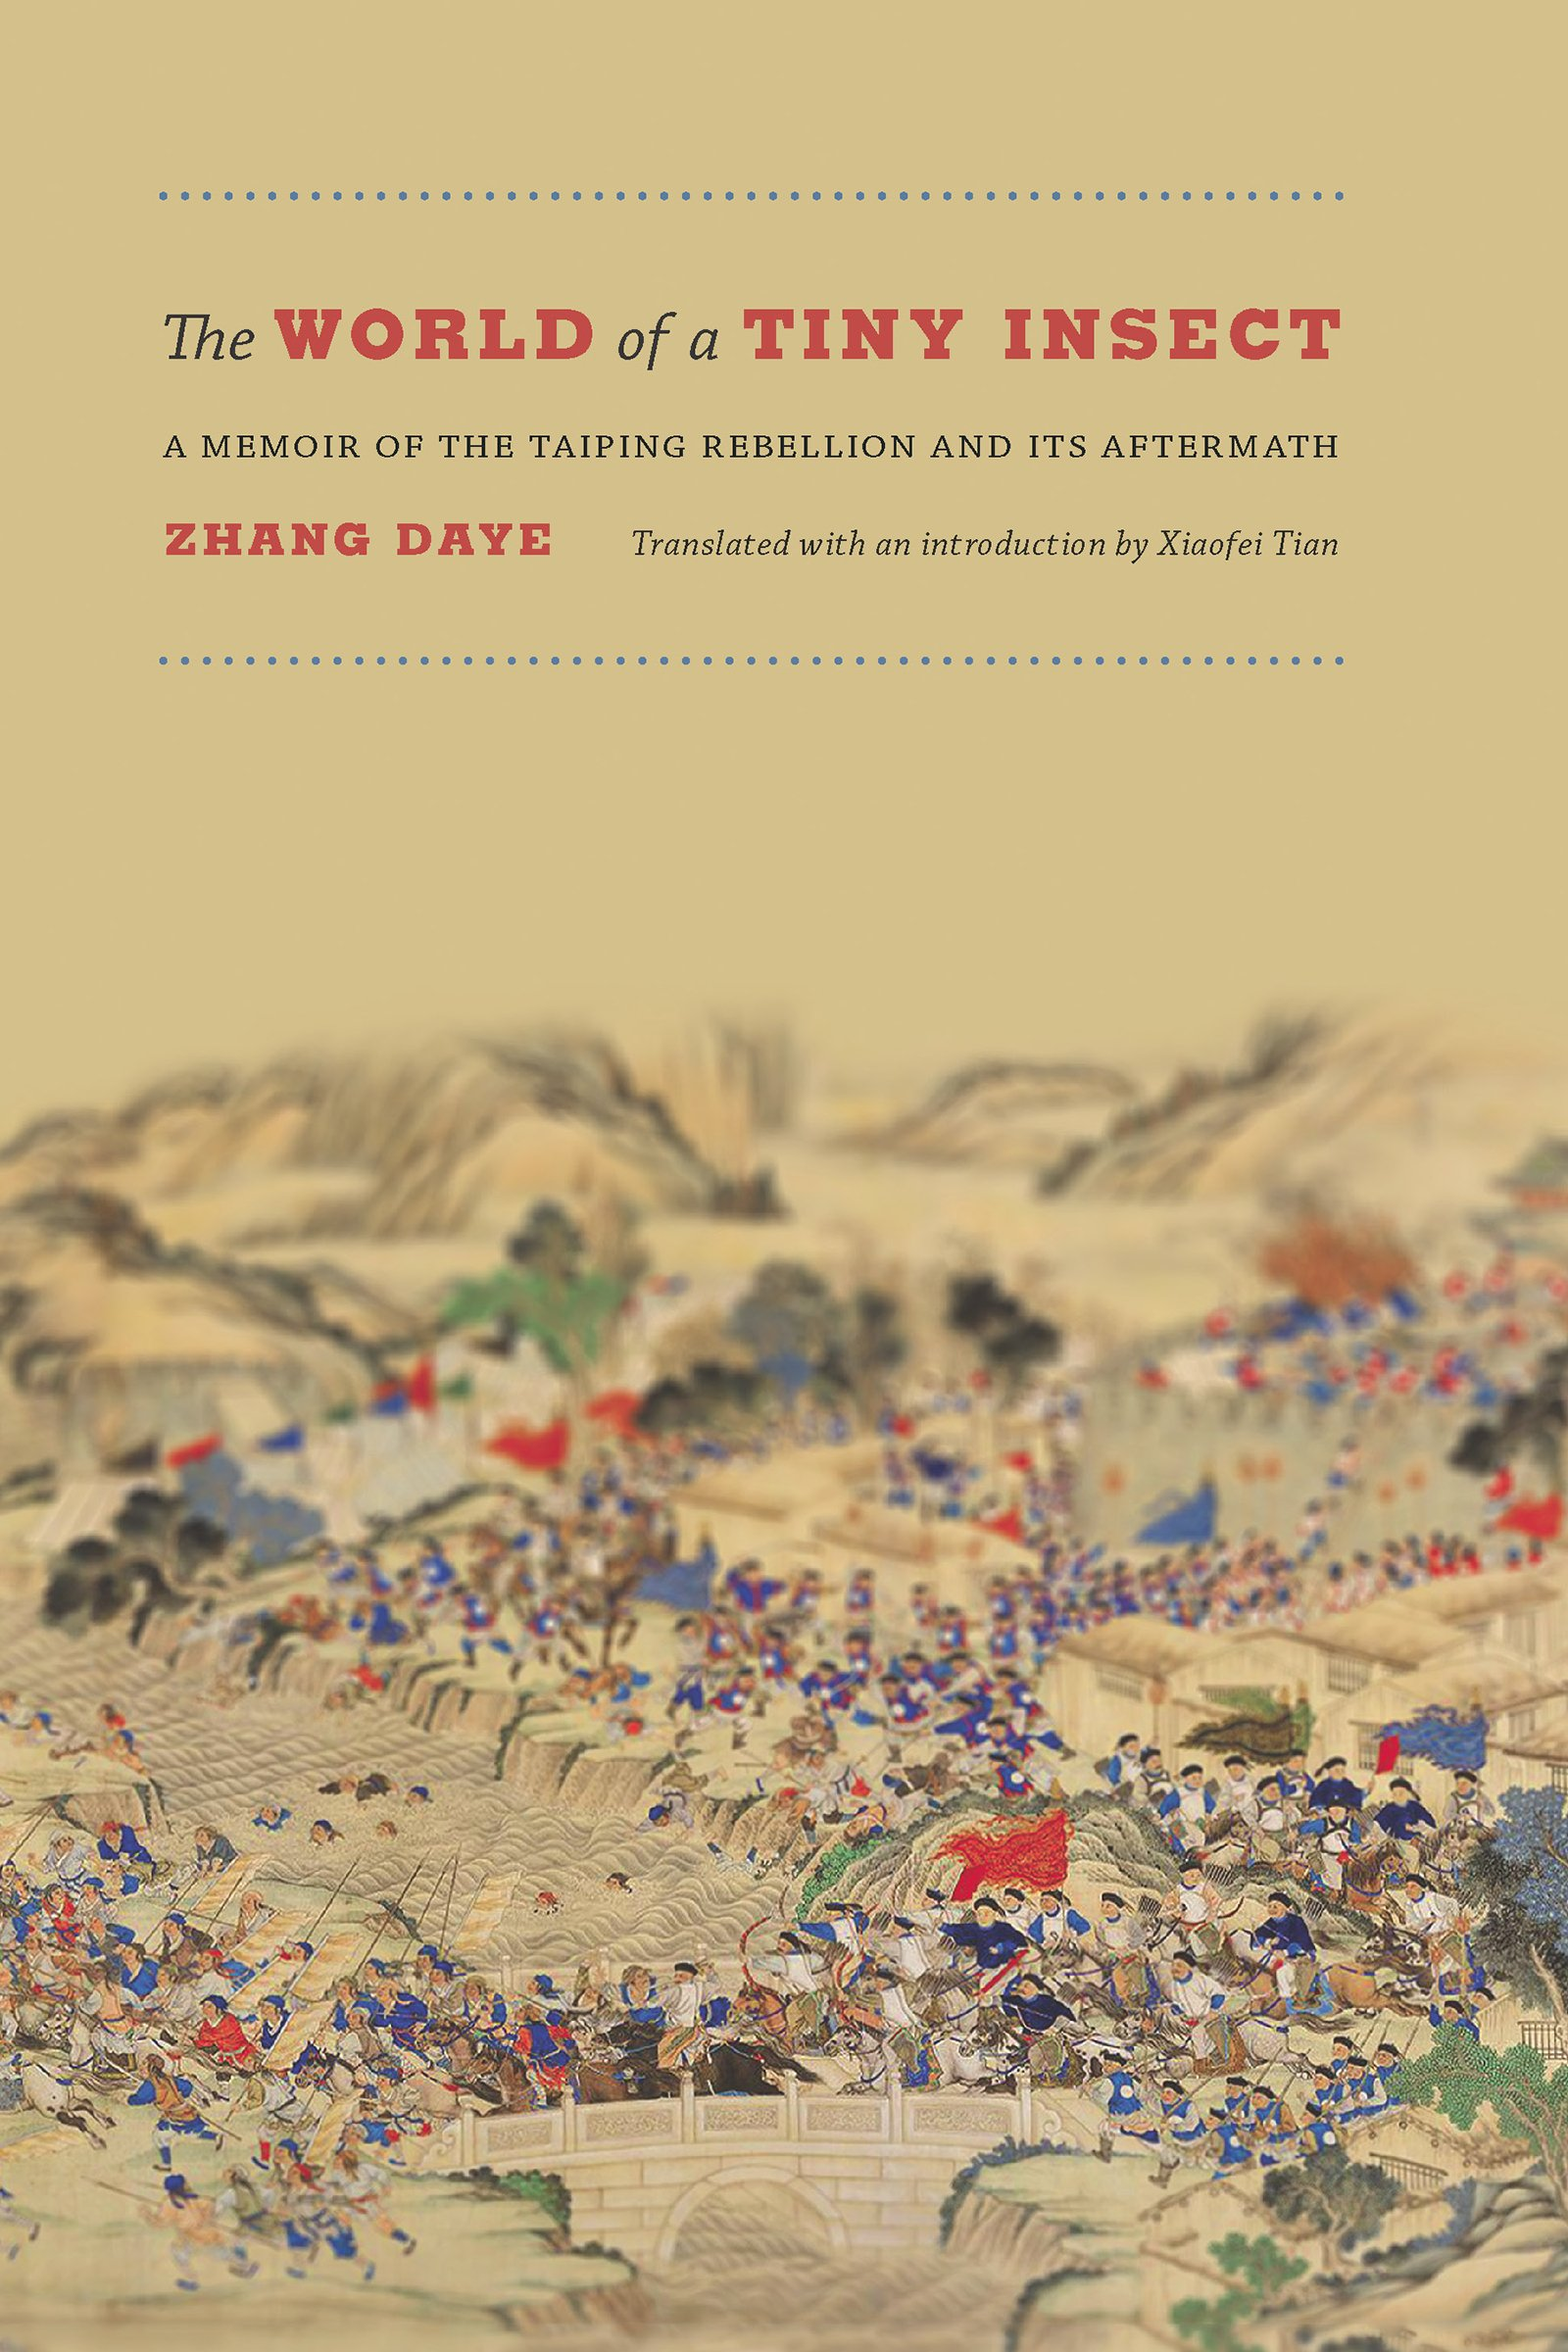 Amazon The World Of A Tiny Insect Memoir Taiping Rebellion And Its Aftermath 9780295993188 Zhang Daye Xiaofei Tian Books